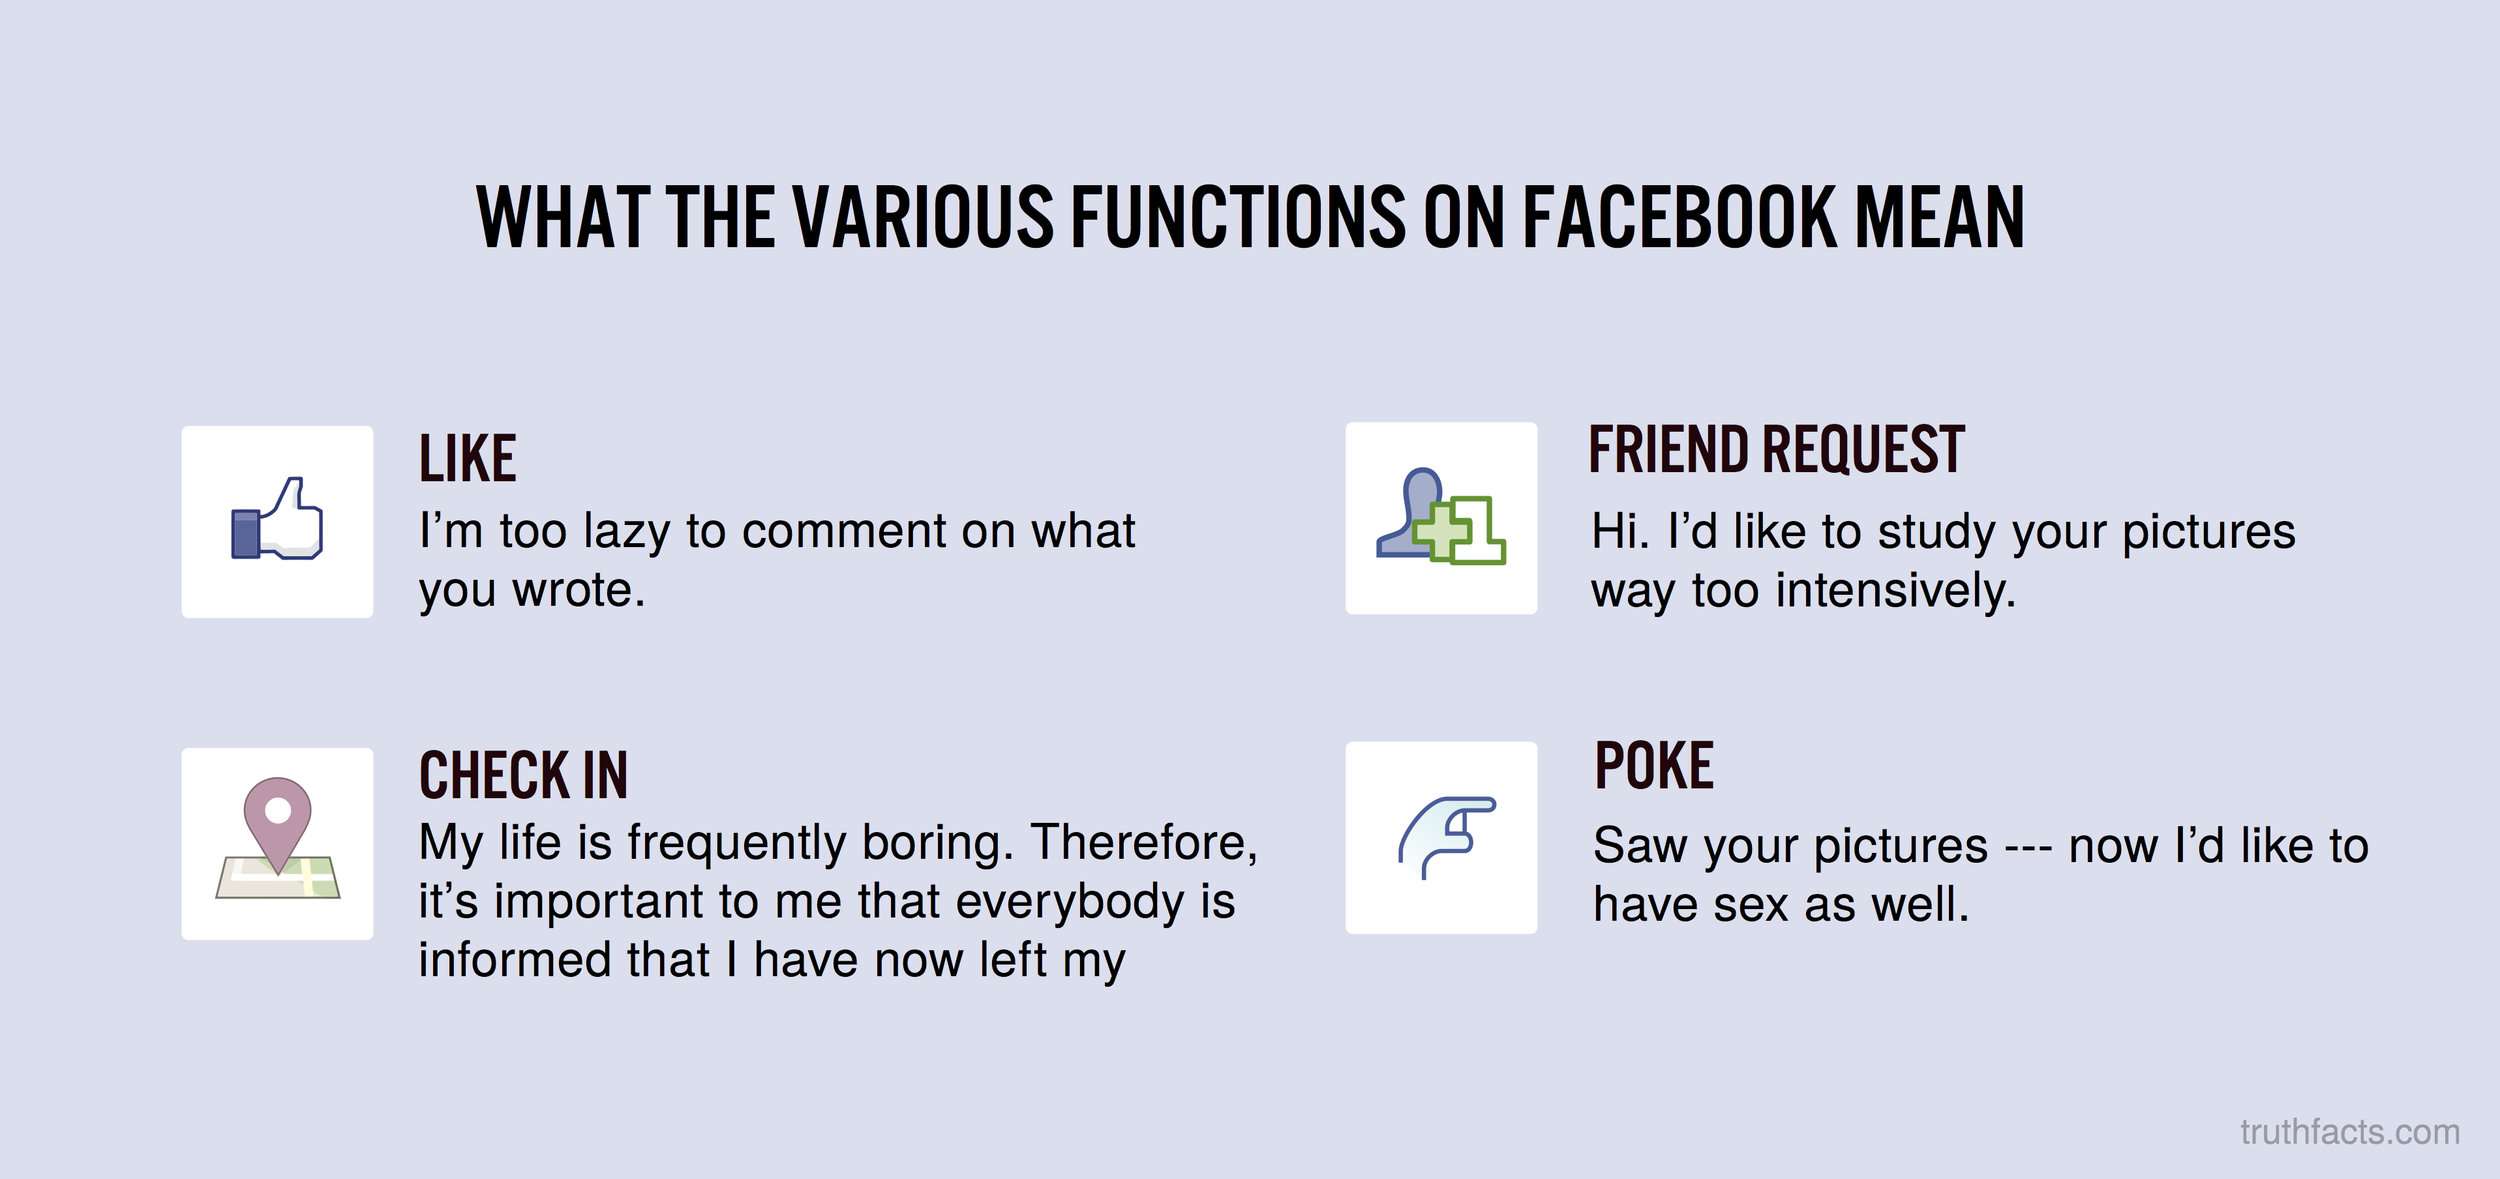 What the various functions on Facebook mean